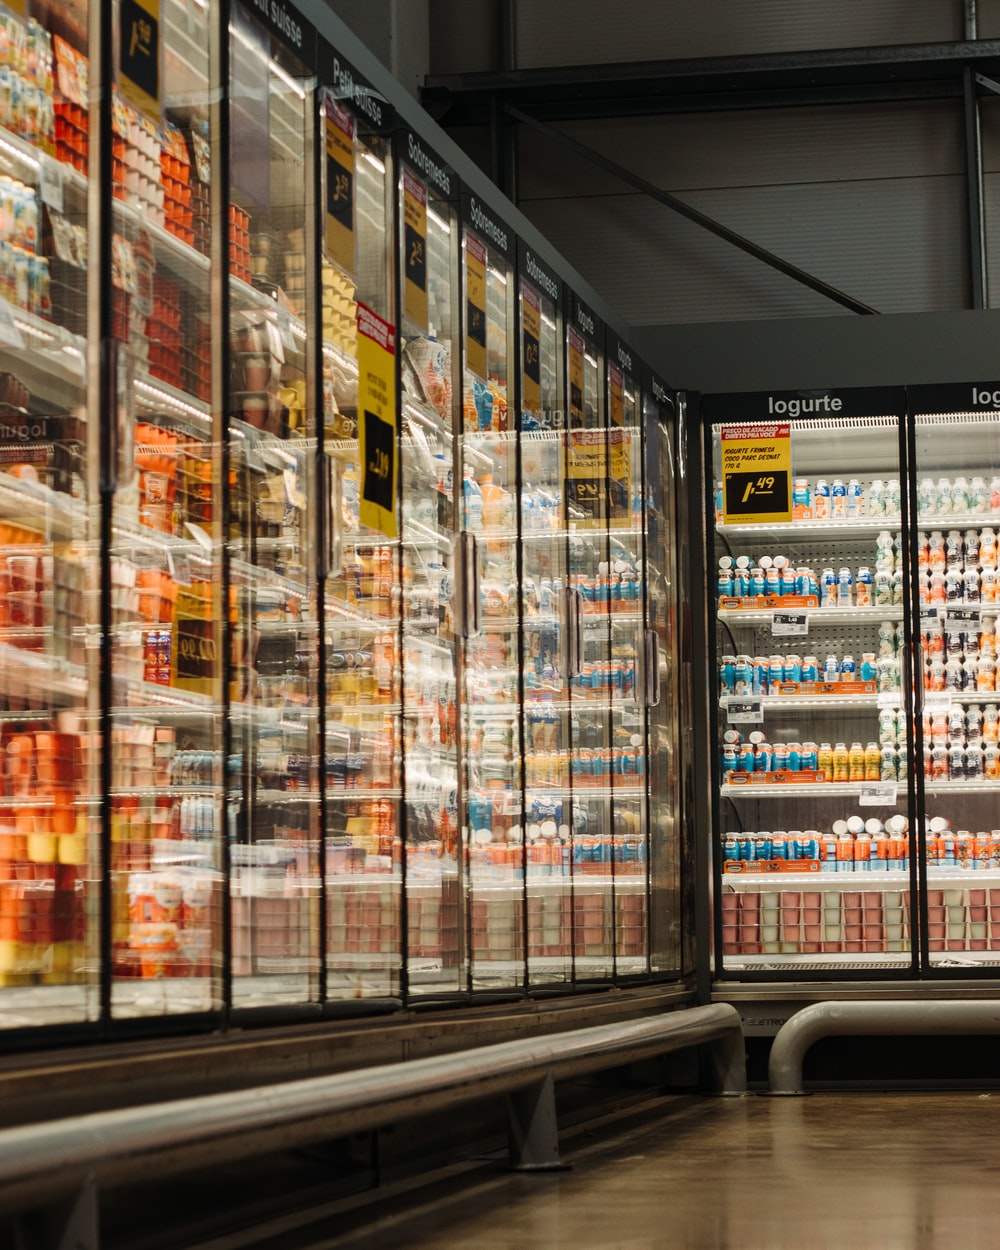 Management Buy-Out of Anglo-Irish Refrigeration